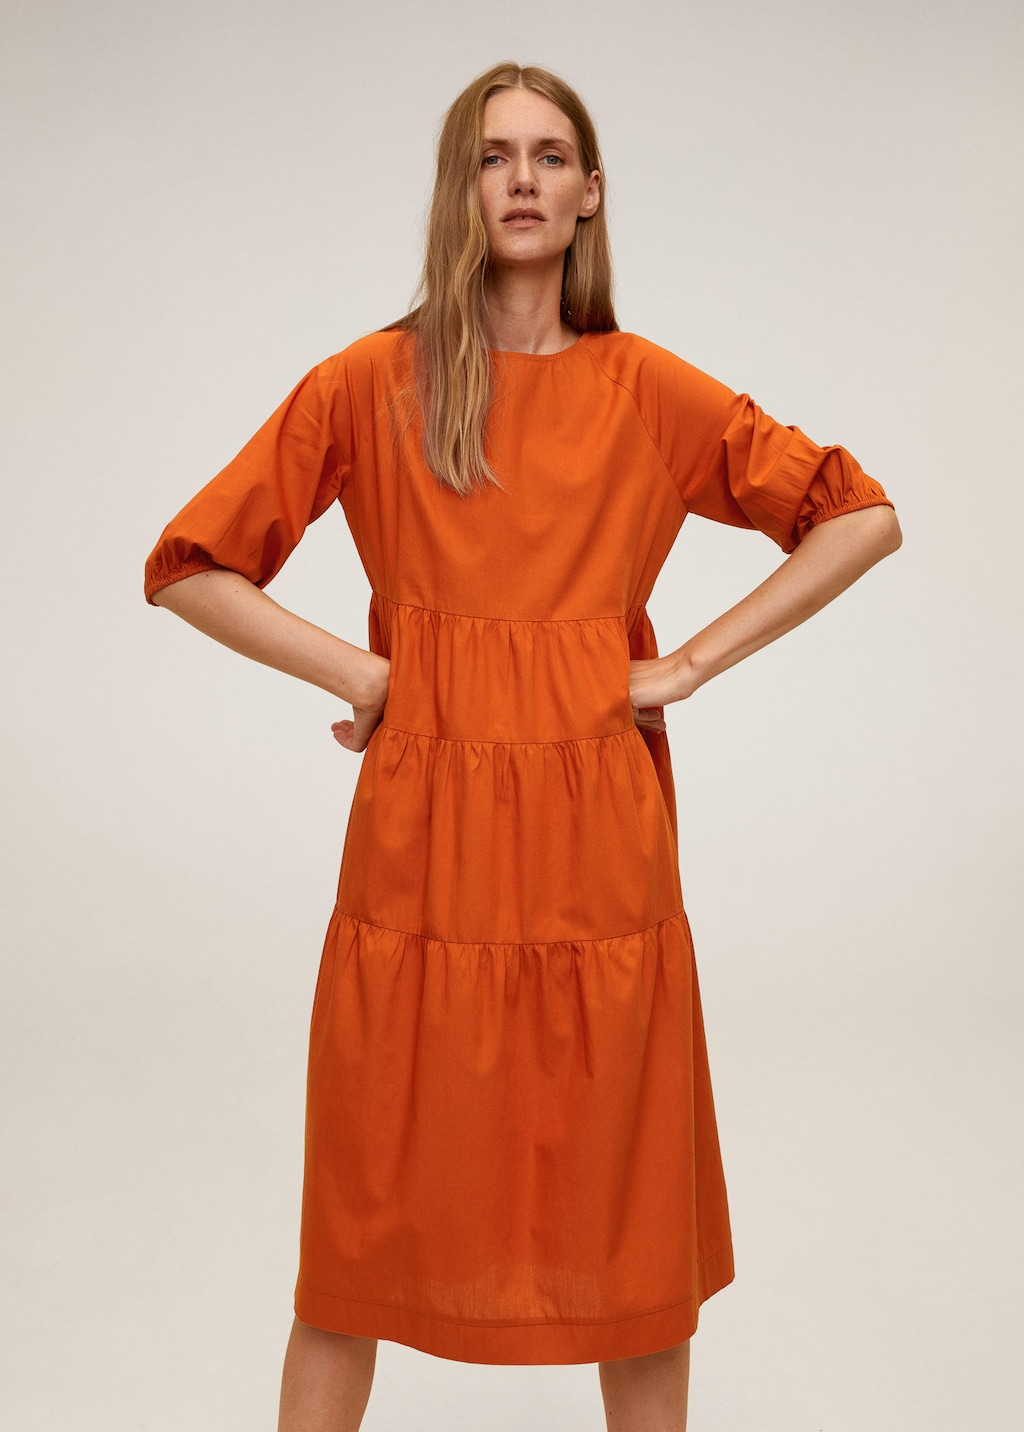 autumn colored dresses for a casual Thanksgiving